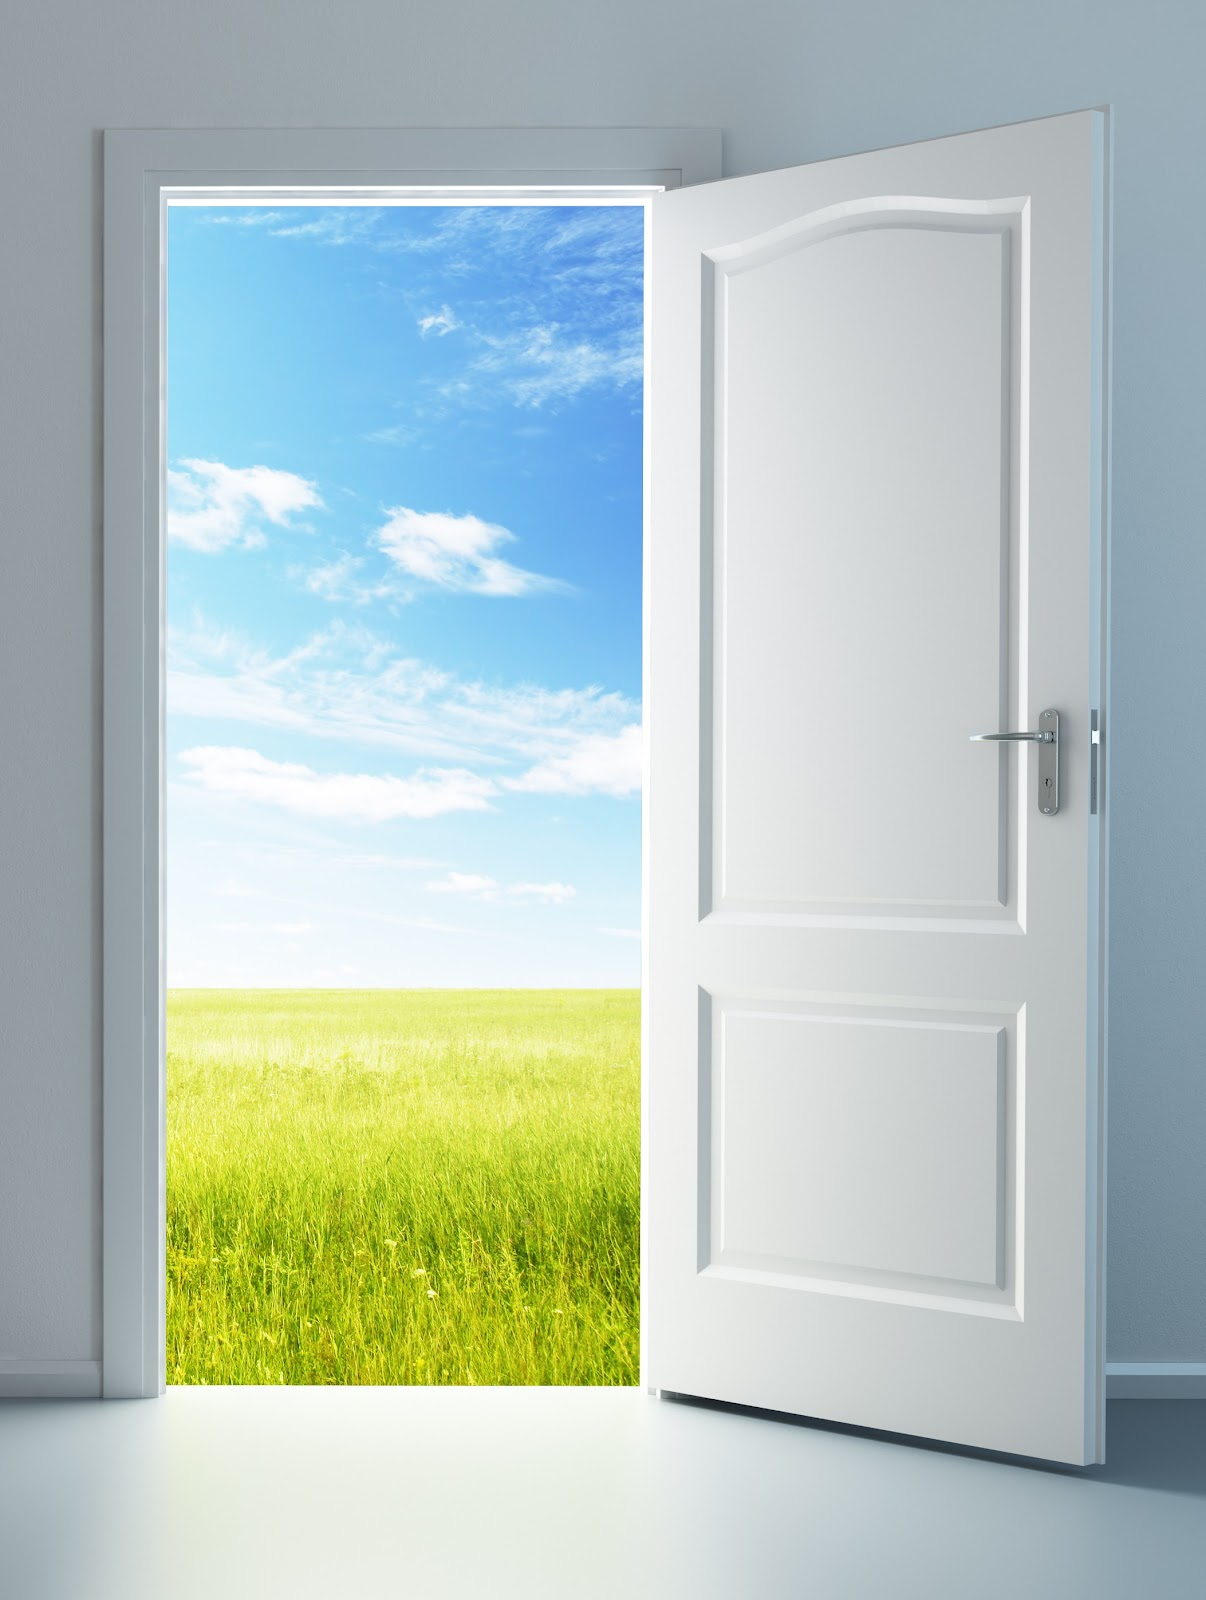 Open the door and look! – Jesus follower